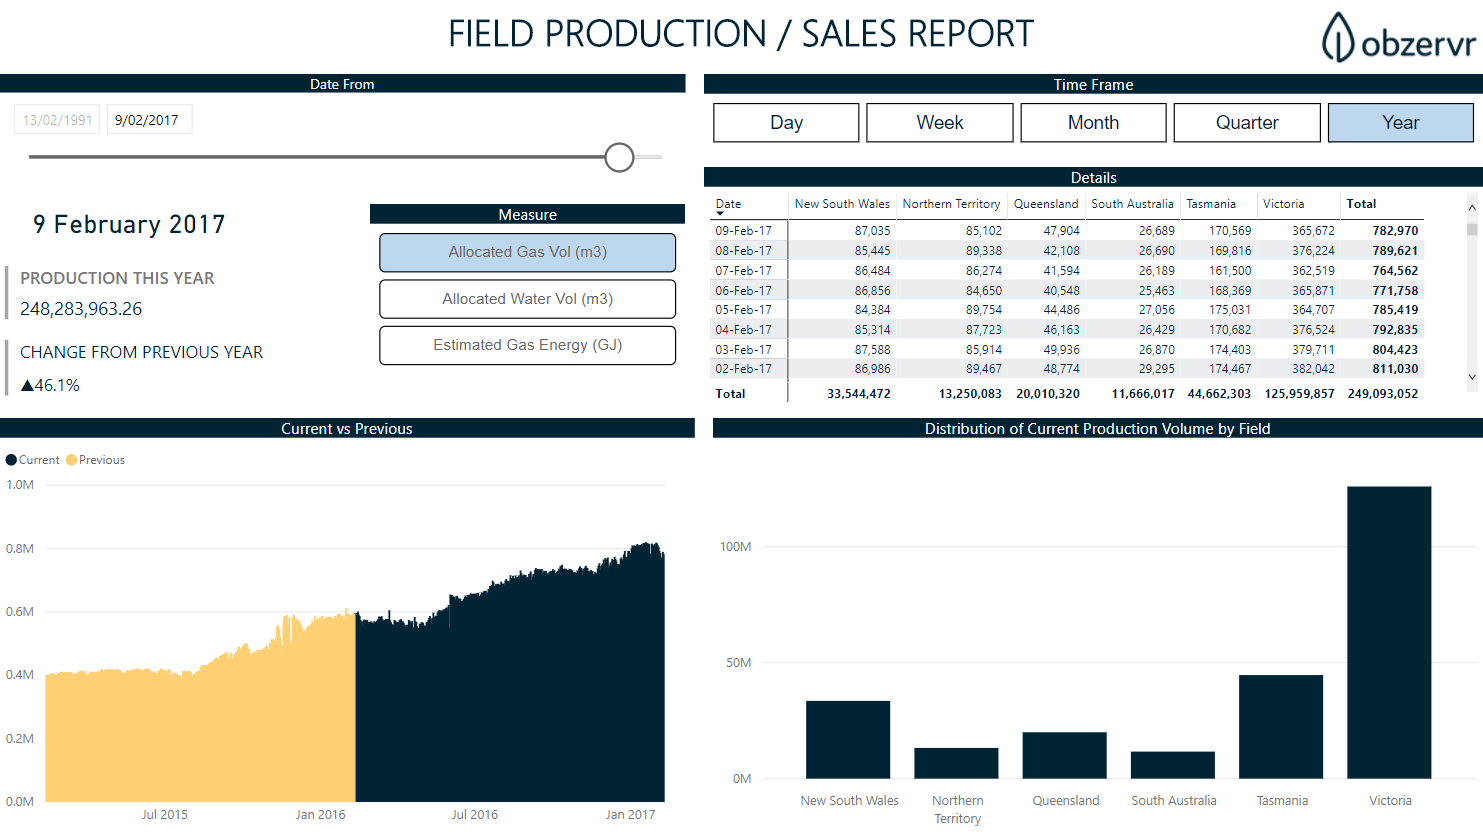 Field production and sales reporting